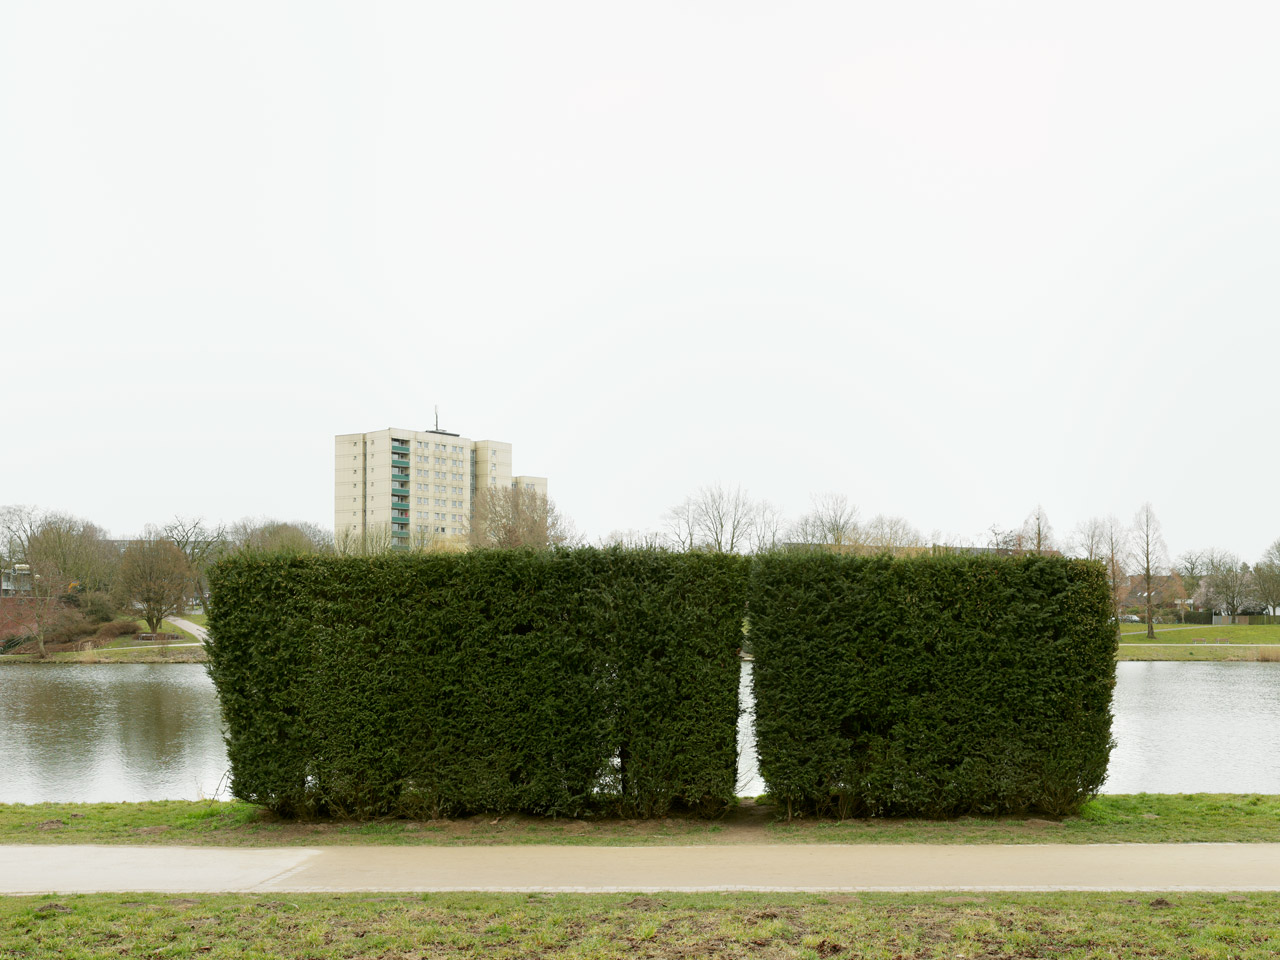 Aasee Muenster, Weniger wild als andere / Less Sauvage than Others, Rosemarie Trockel, 2007